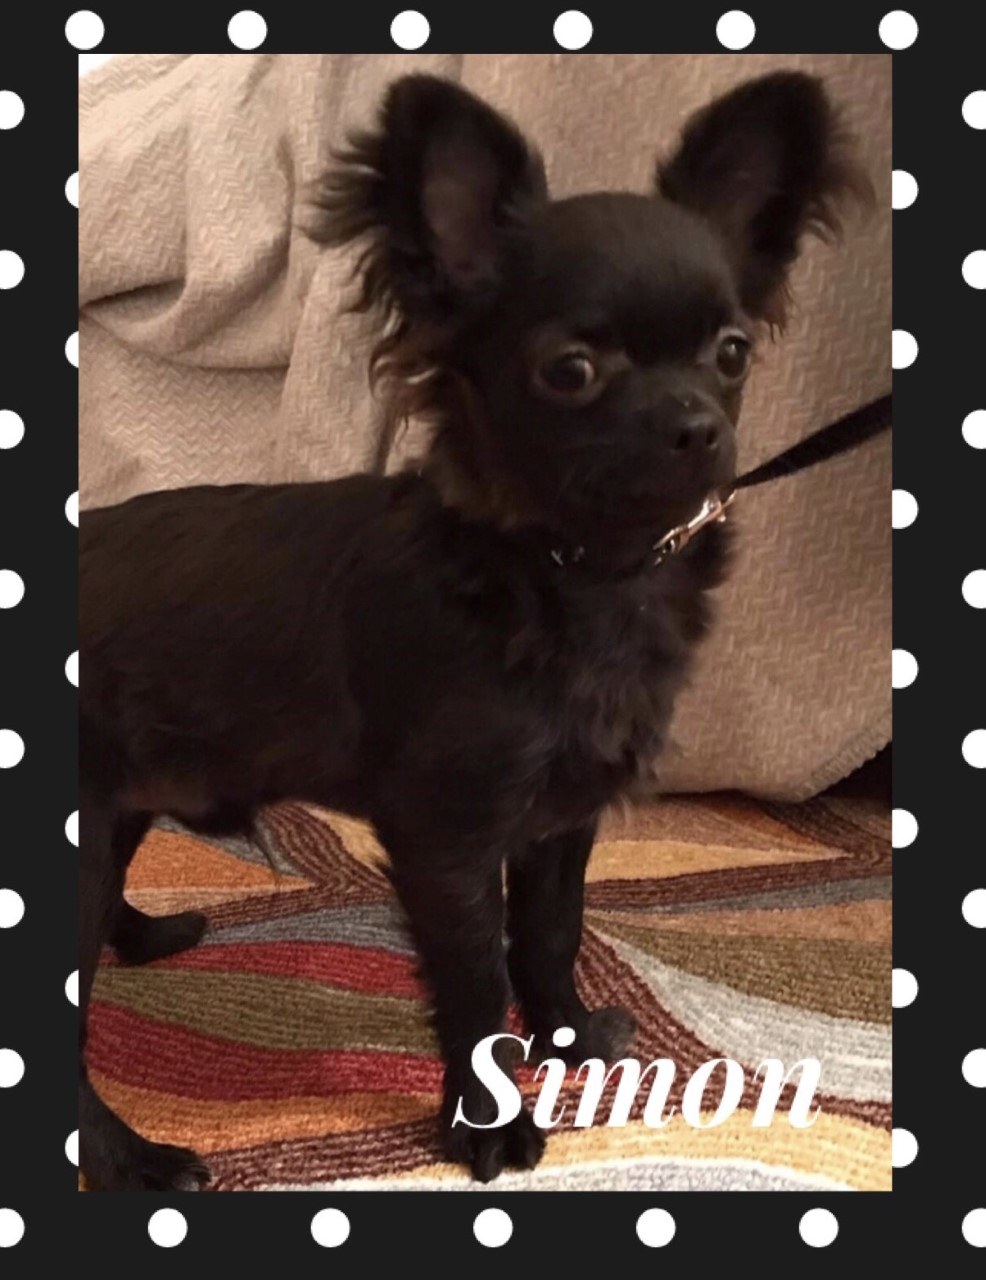 simon_says